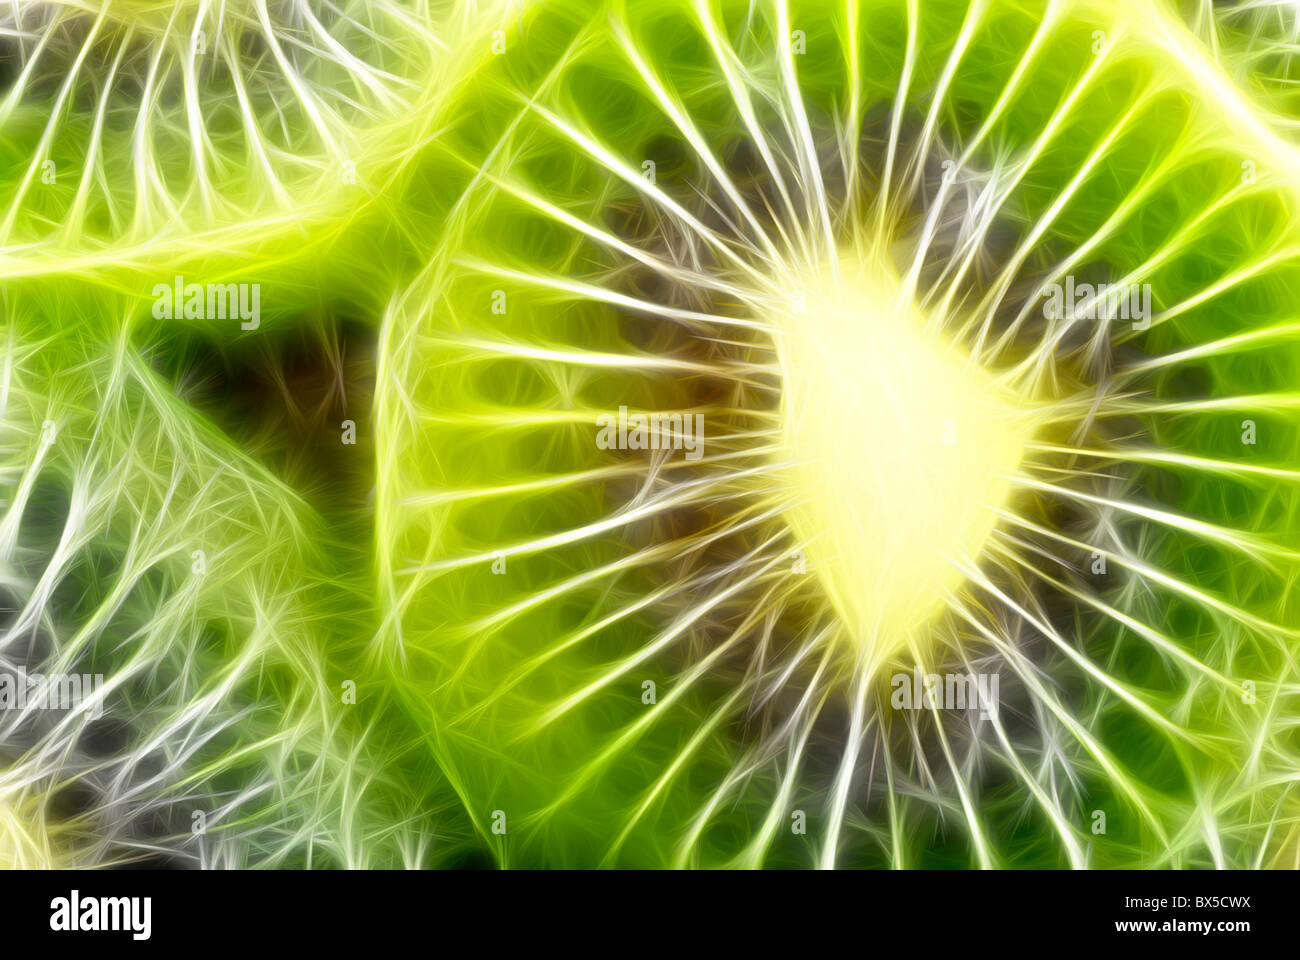 Download Wallpaper High Quality Abstract - high-quality-abstract-fractal-rendered-kiwi-as-background-wallpaper-BX5CWX  Trends_765523.jpg